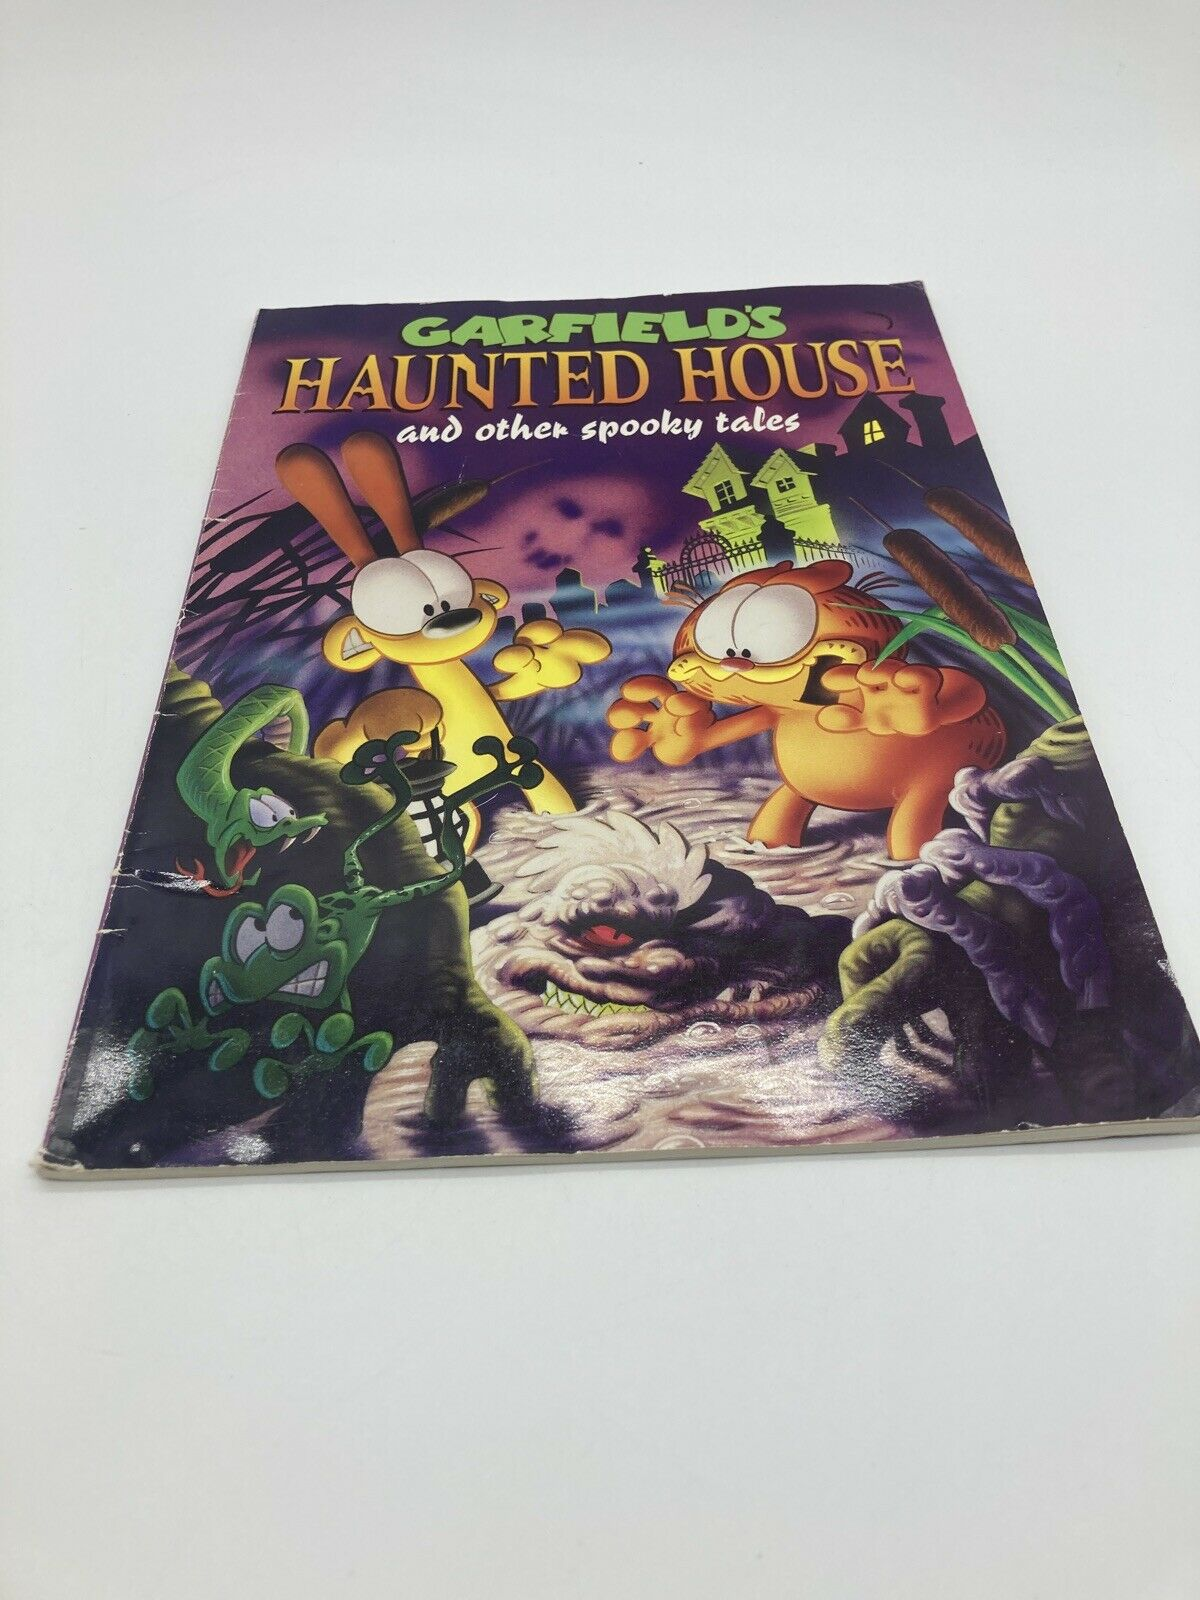 Garfield S Haunted House And Other Spooky Tales By Jim Davis Paperback 1994 For Sale Online Ebay